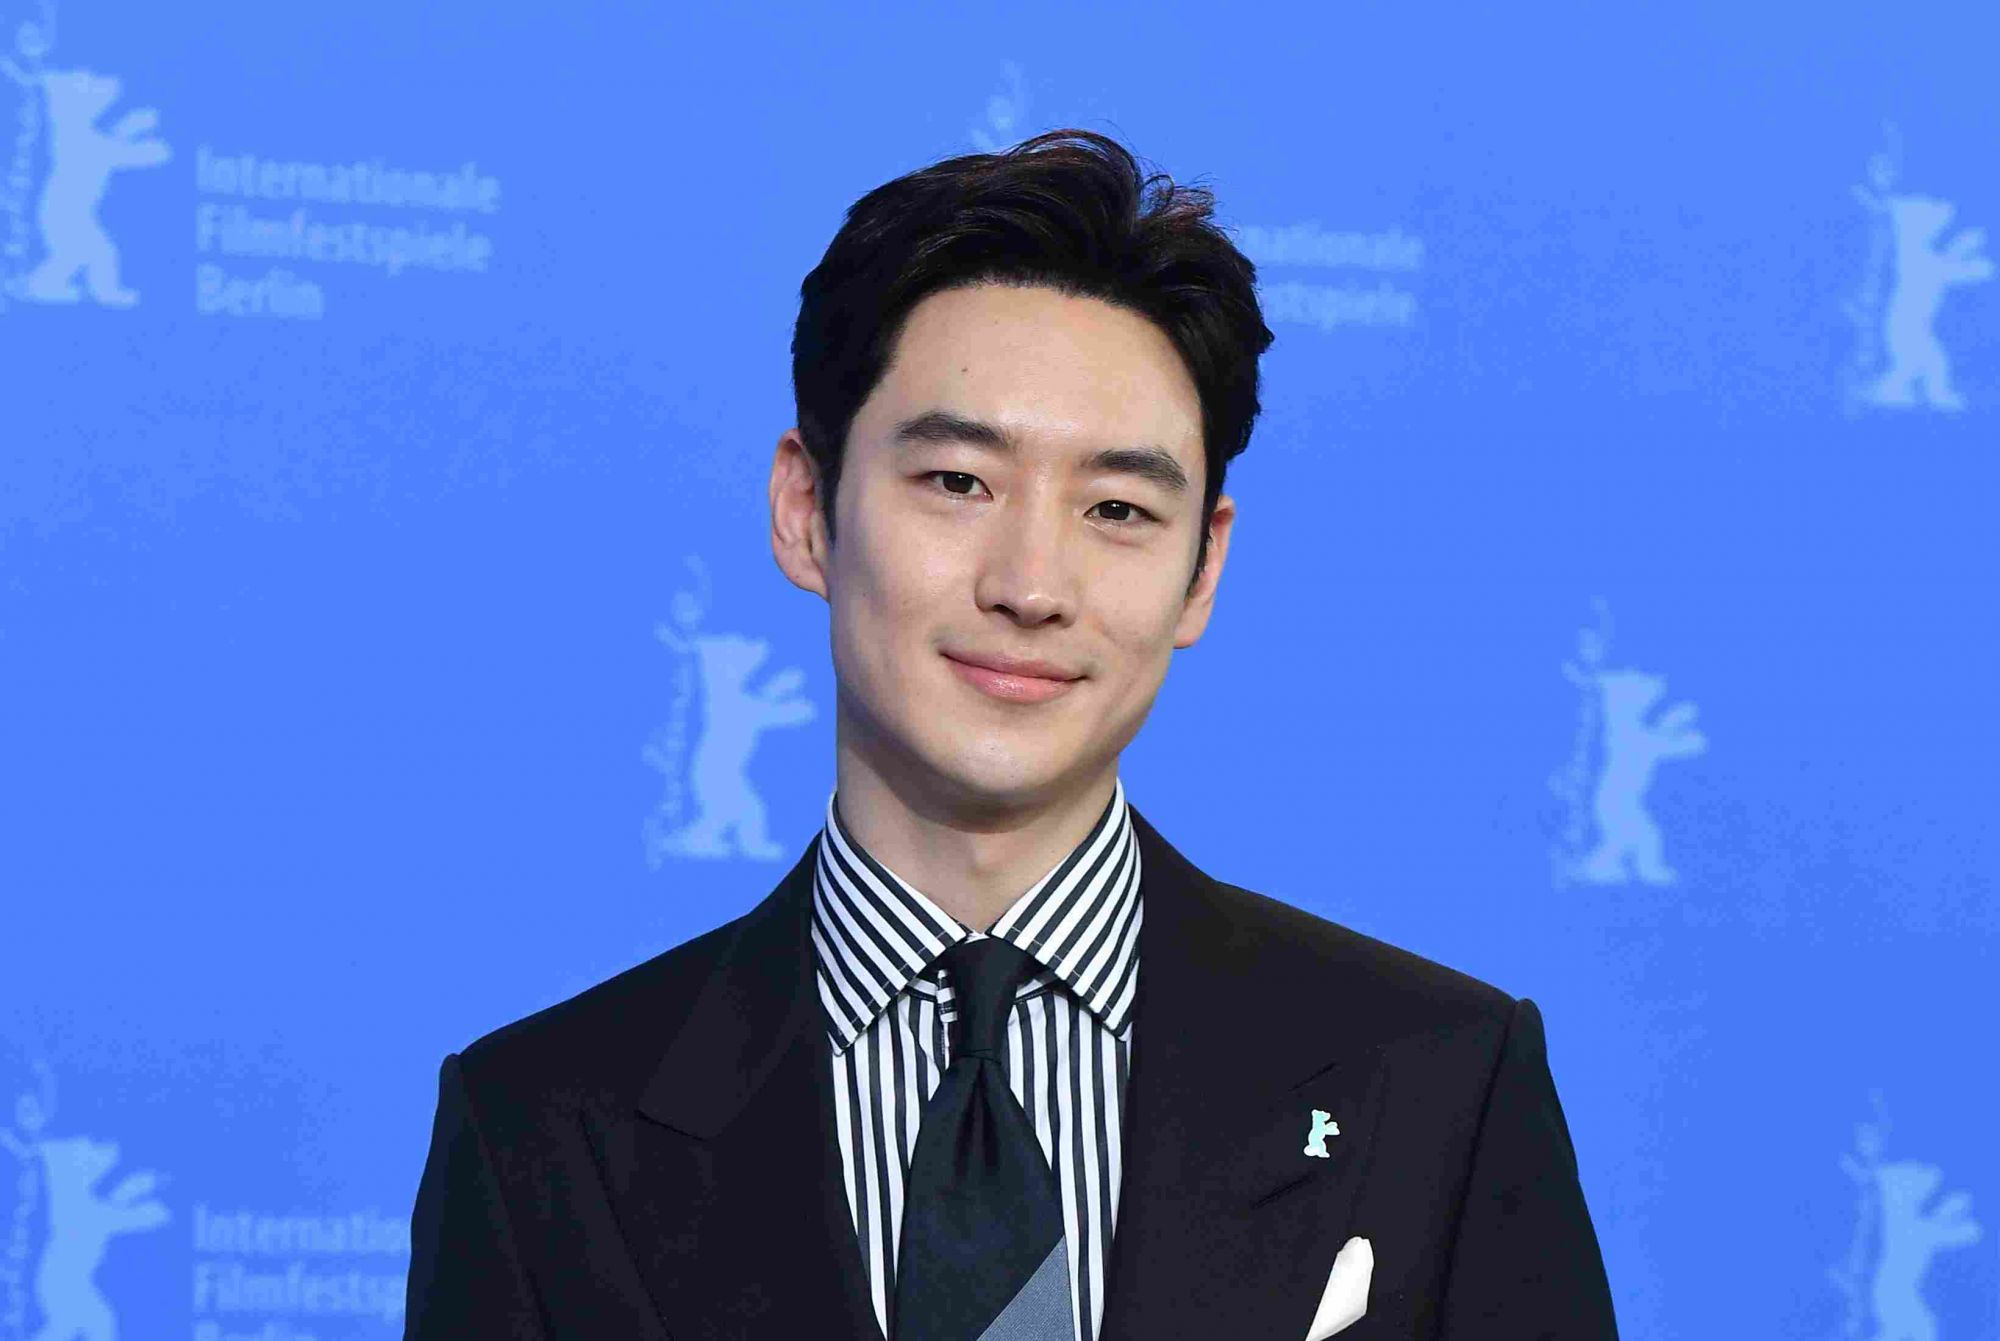 """BERLIN, GERMANY - FEBRUARY 22:  Lee Je-hoon attends the """"Time to Hunt"""" (Sa-nyang-eui-si-gan) photo call during the 70th Berlinale International Film Festival Berlin at Grand Hyatt Hotel on February 22, 2020 in Berlin, Germany.  (Photo by Stephane Cardinale - Corbis/Corbis via Getty Images)"""